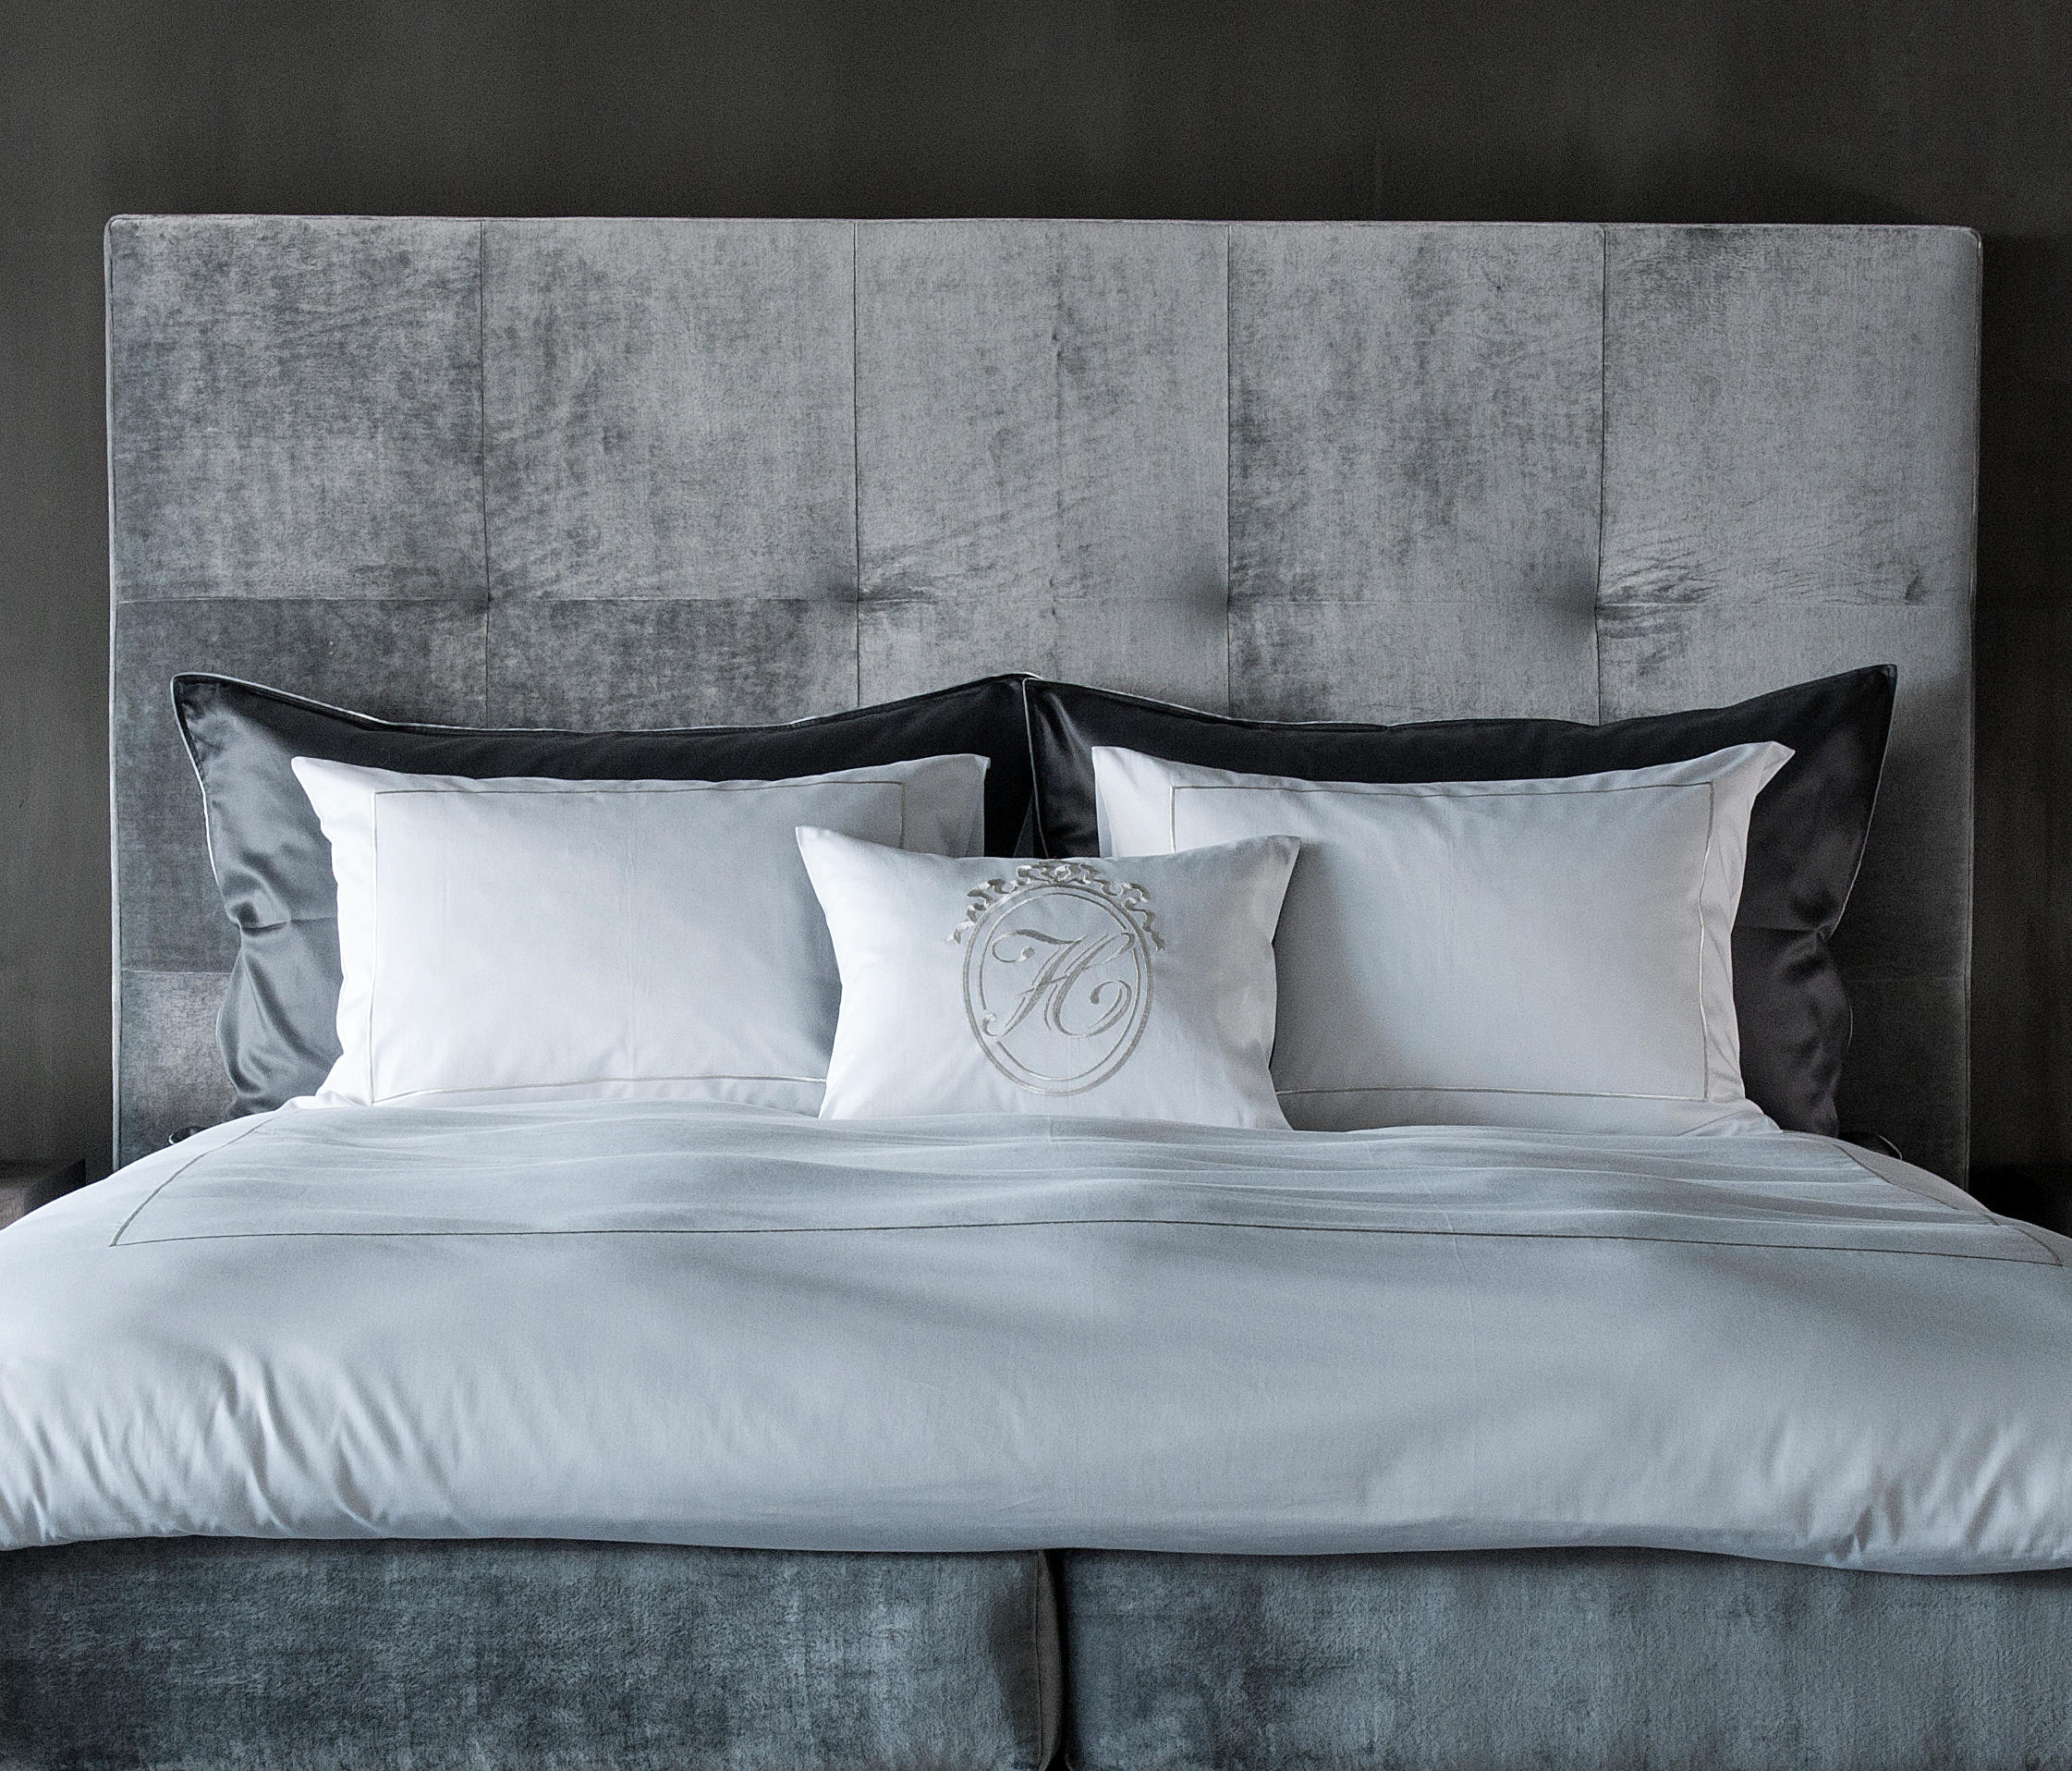 Square Headboard By Nilson Handmade Beds | Bed Headboards ...